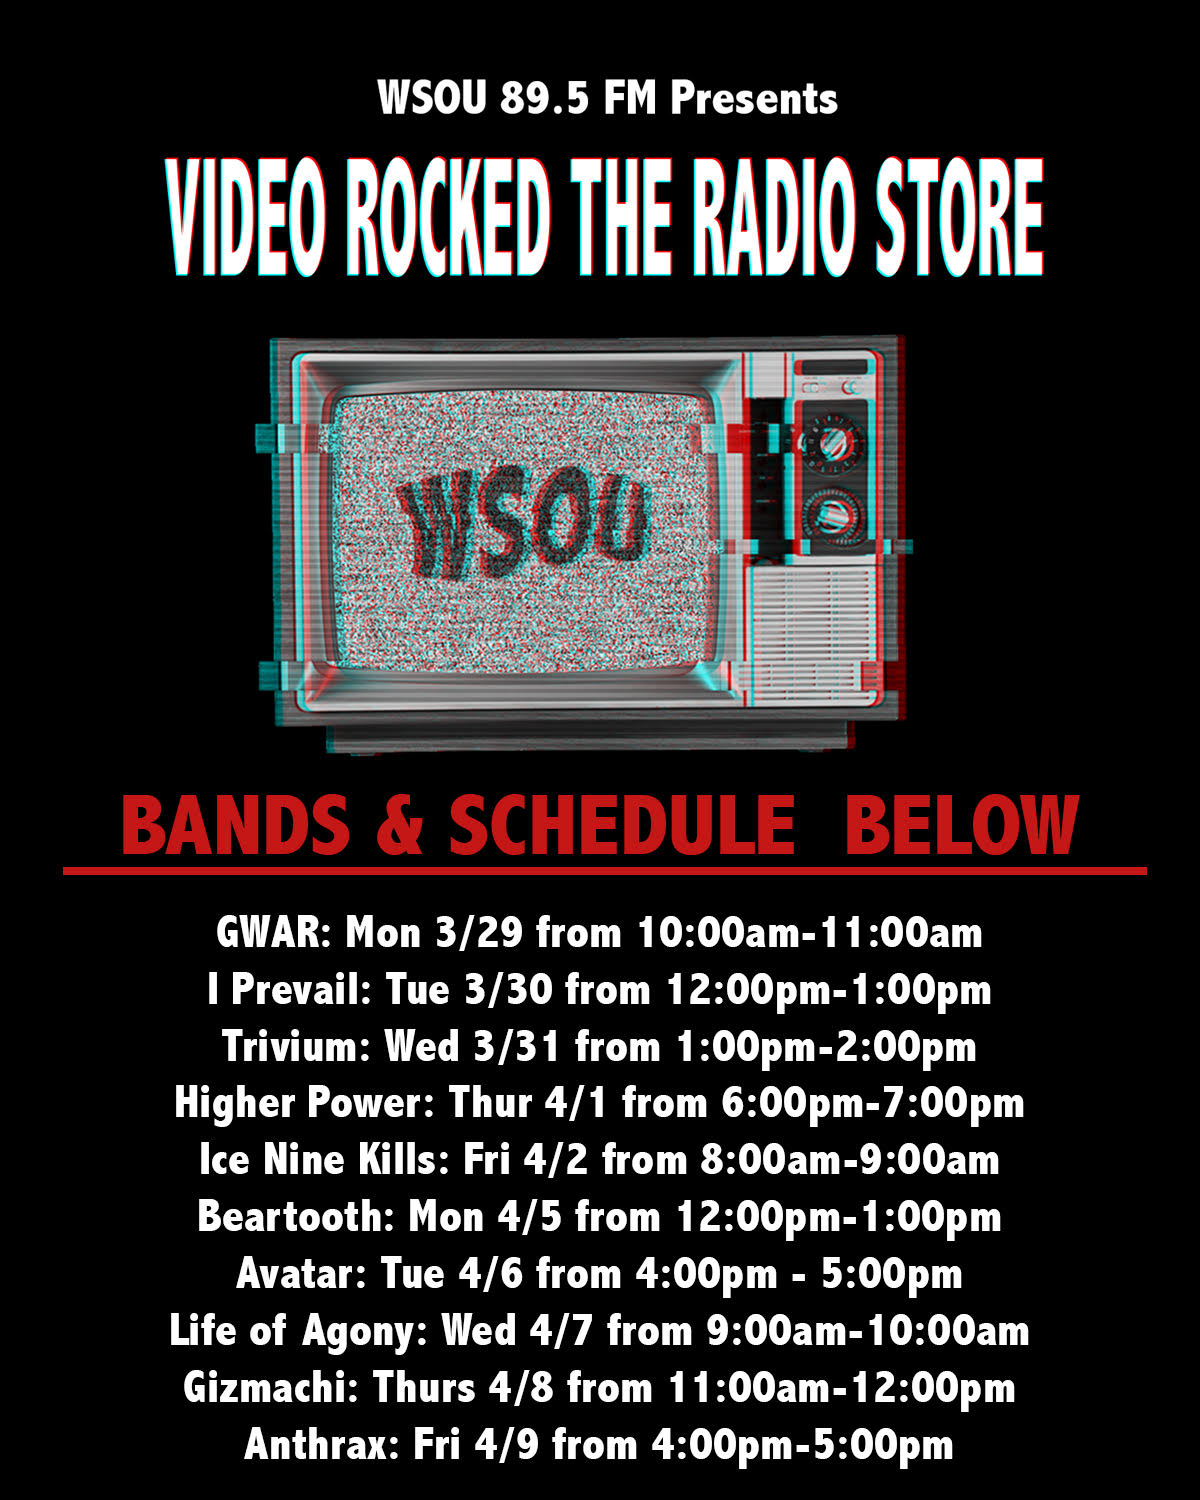 GWAR 3/29 10am-11am I Prevail 3/30 12pm-1pm Trivium 3/31 1pm-2pm Higher Power 4/1  6pm-7pm Ice Nine Kills 4/2 8am-9am Beartooth 4/5 12pm-1pm Avatar Tue 4/6 4pm-5pm Life of Agony 4/7 9am-10am Gizmachi 4/8 11am-12pm Anthrax 4/9 4pm-5pm